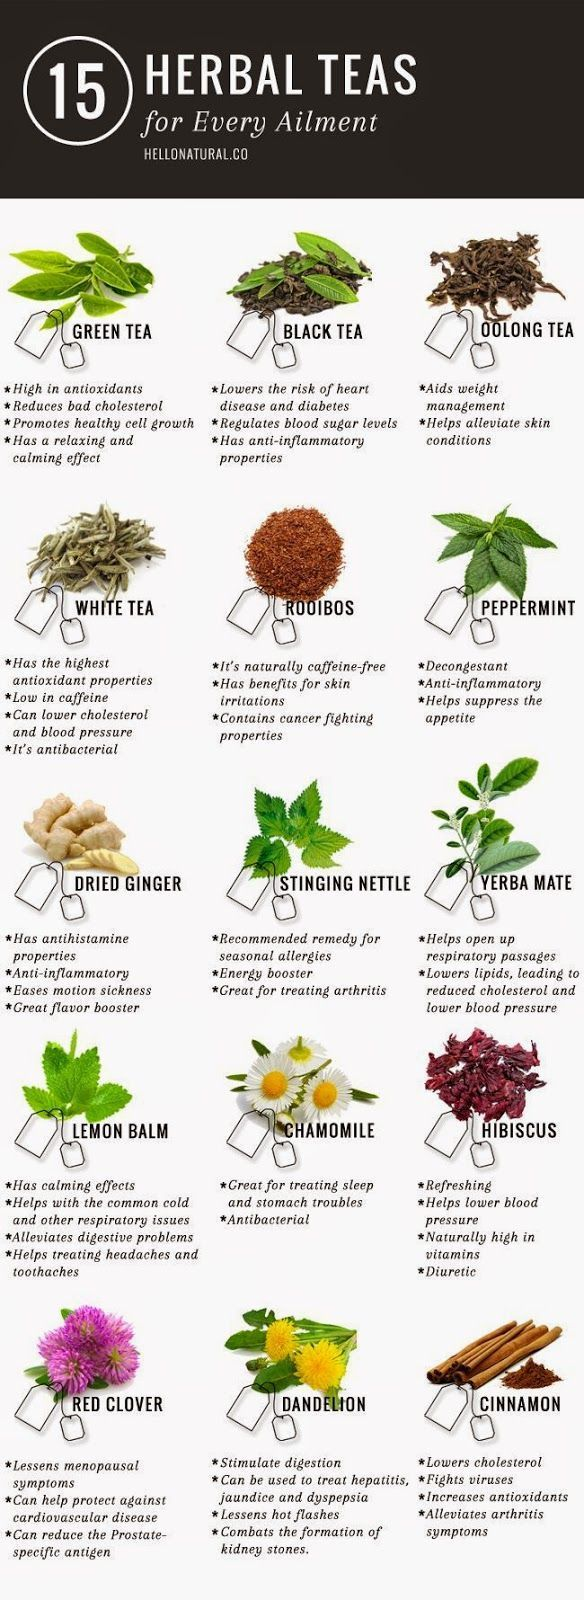 Green tea is not the only tea with promising health benefits...